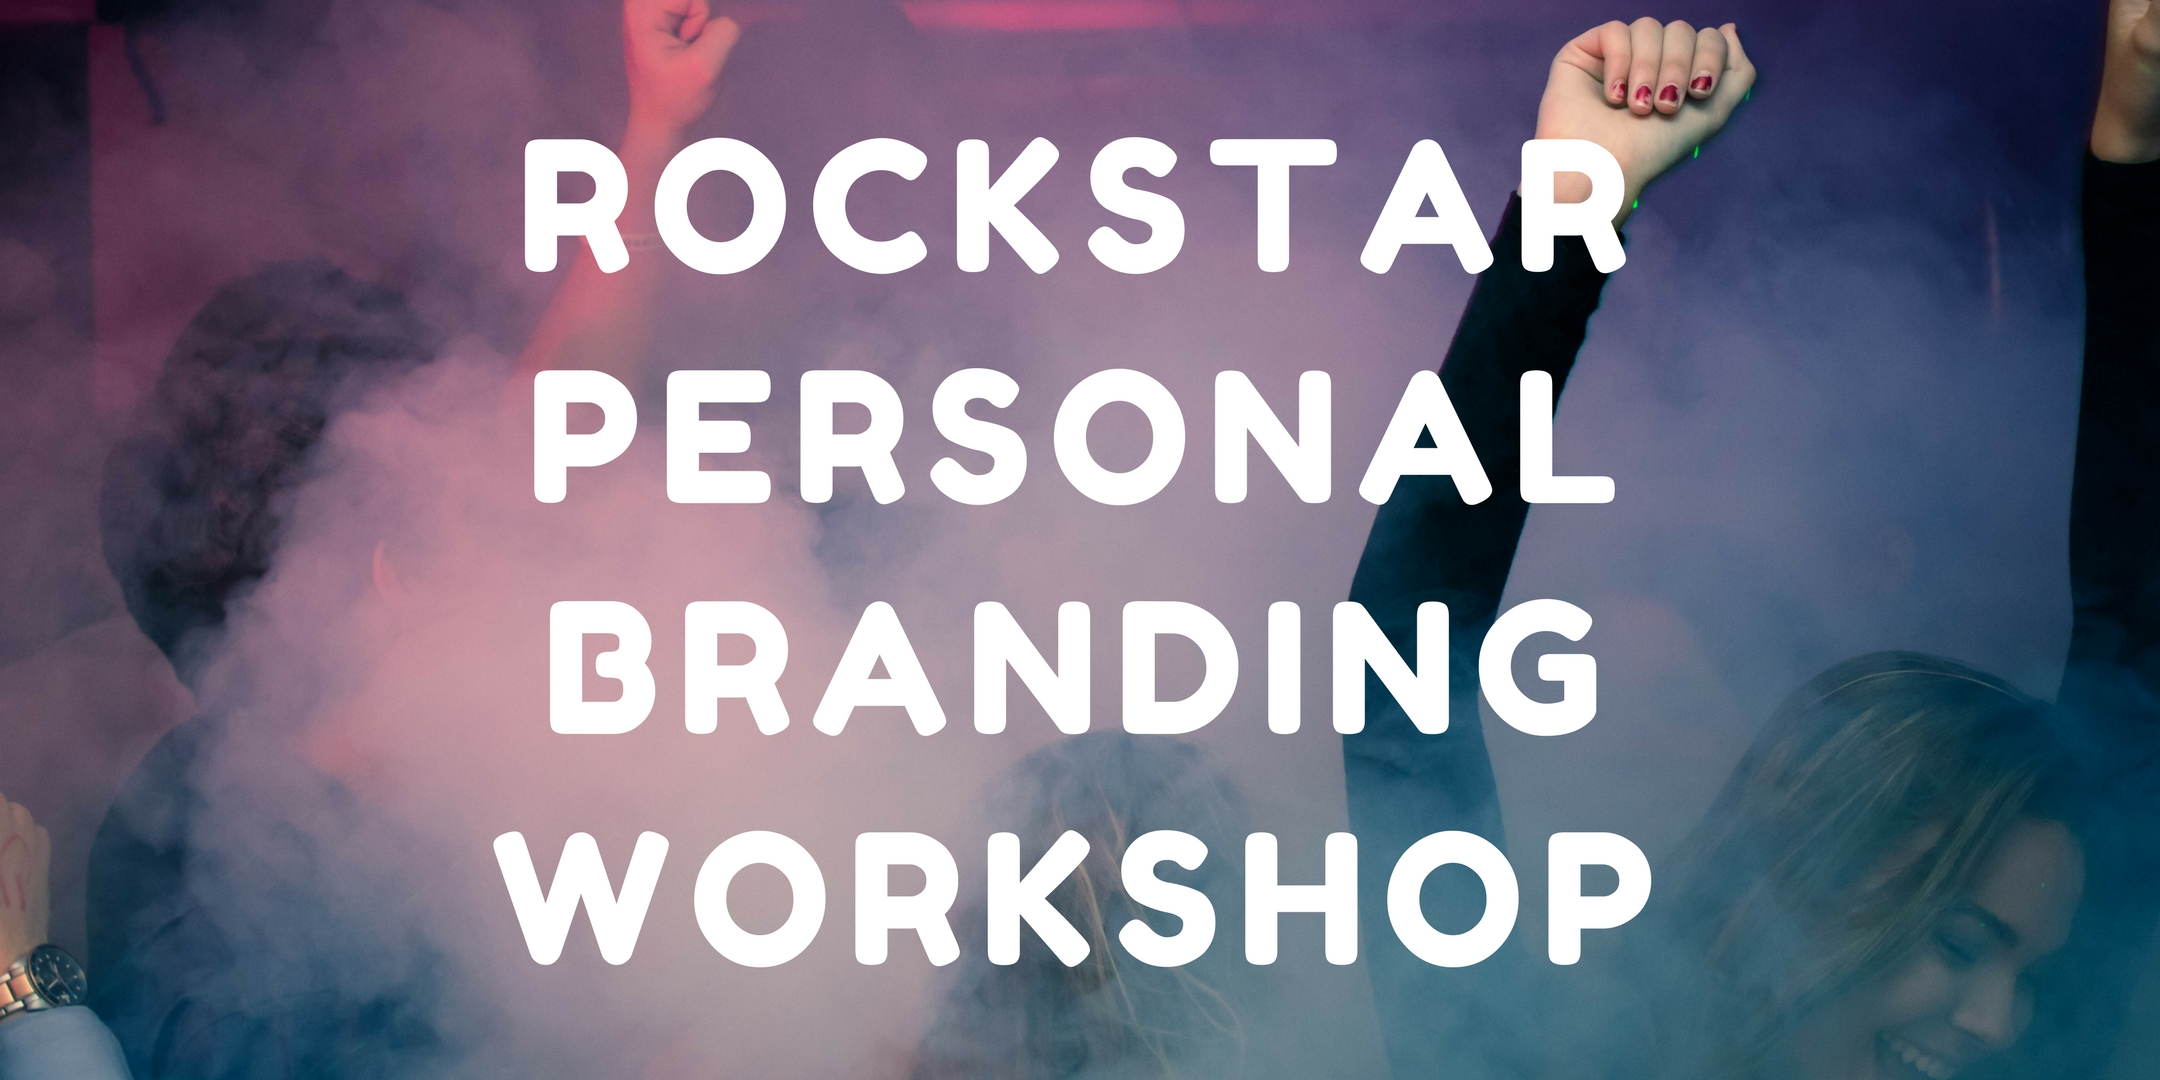 ROCKstar Personal Branding: Stand Out From The Crowd, Grow Your Network, & Do Better Business